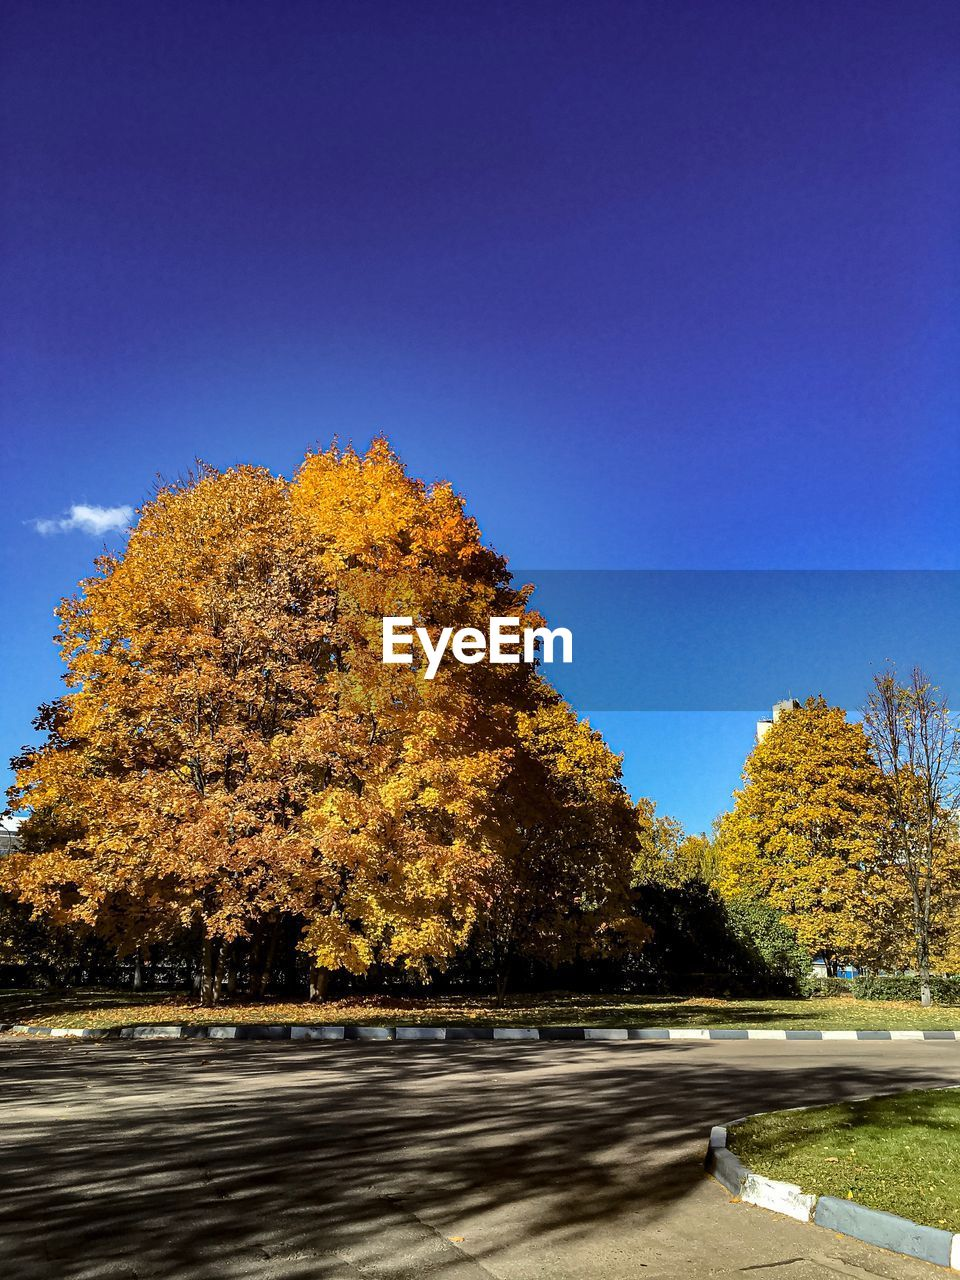 tree, plant, autumn, sky, nature, beauty in nature, blue, no people, change, transportation, clear sky, day, growth, tranquility, scenics - nature, outdoors, road, sunlight, tranquil scene, copy space